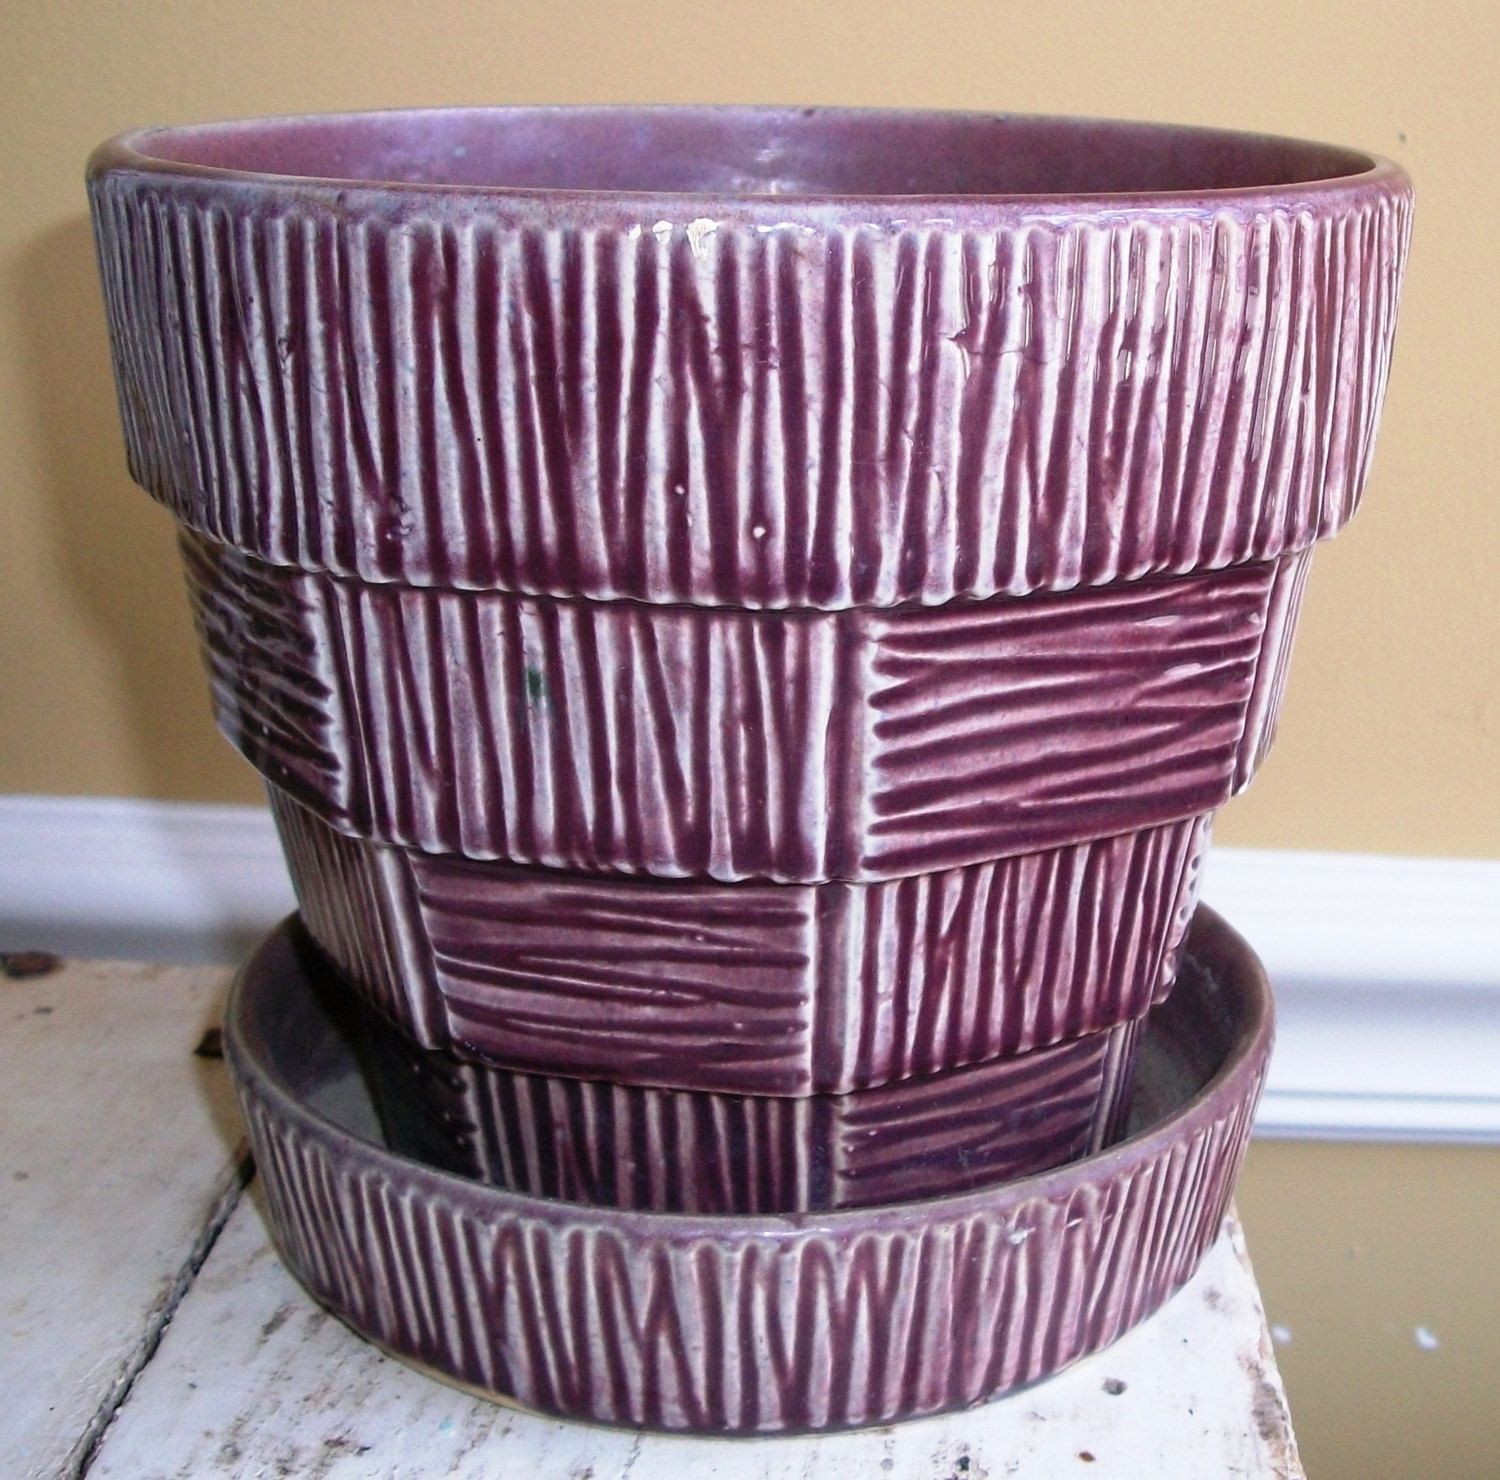 Ceramic Flower Pot Large Vintage Mccoy Pottery Rare Large Purple Flower Pot W